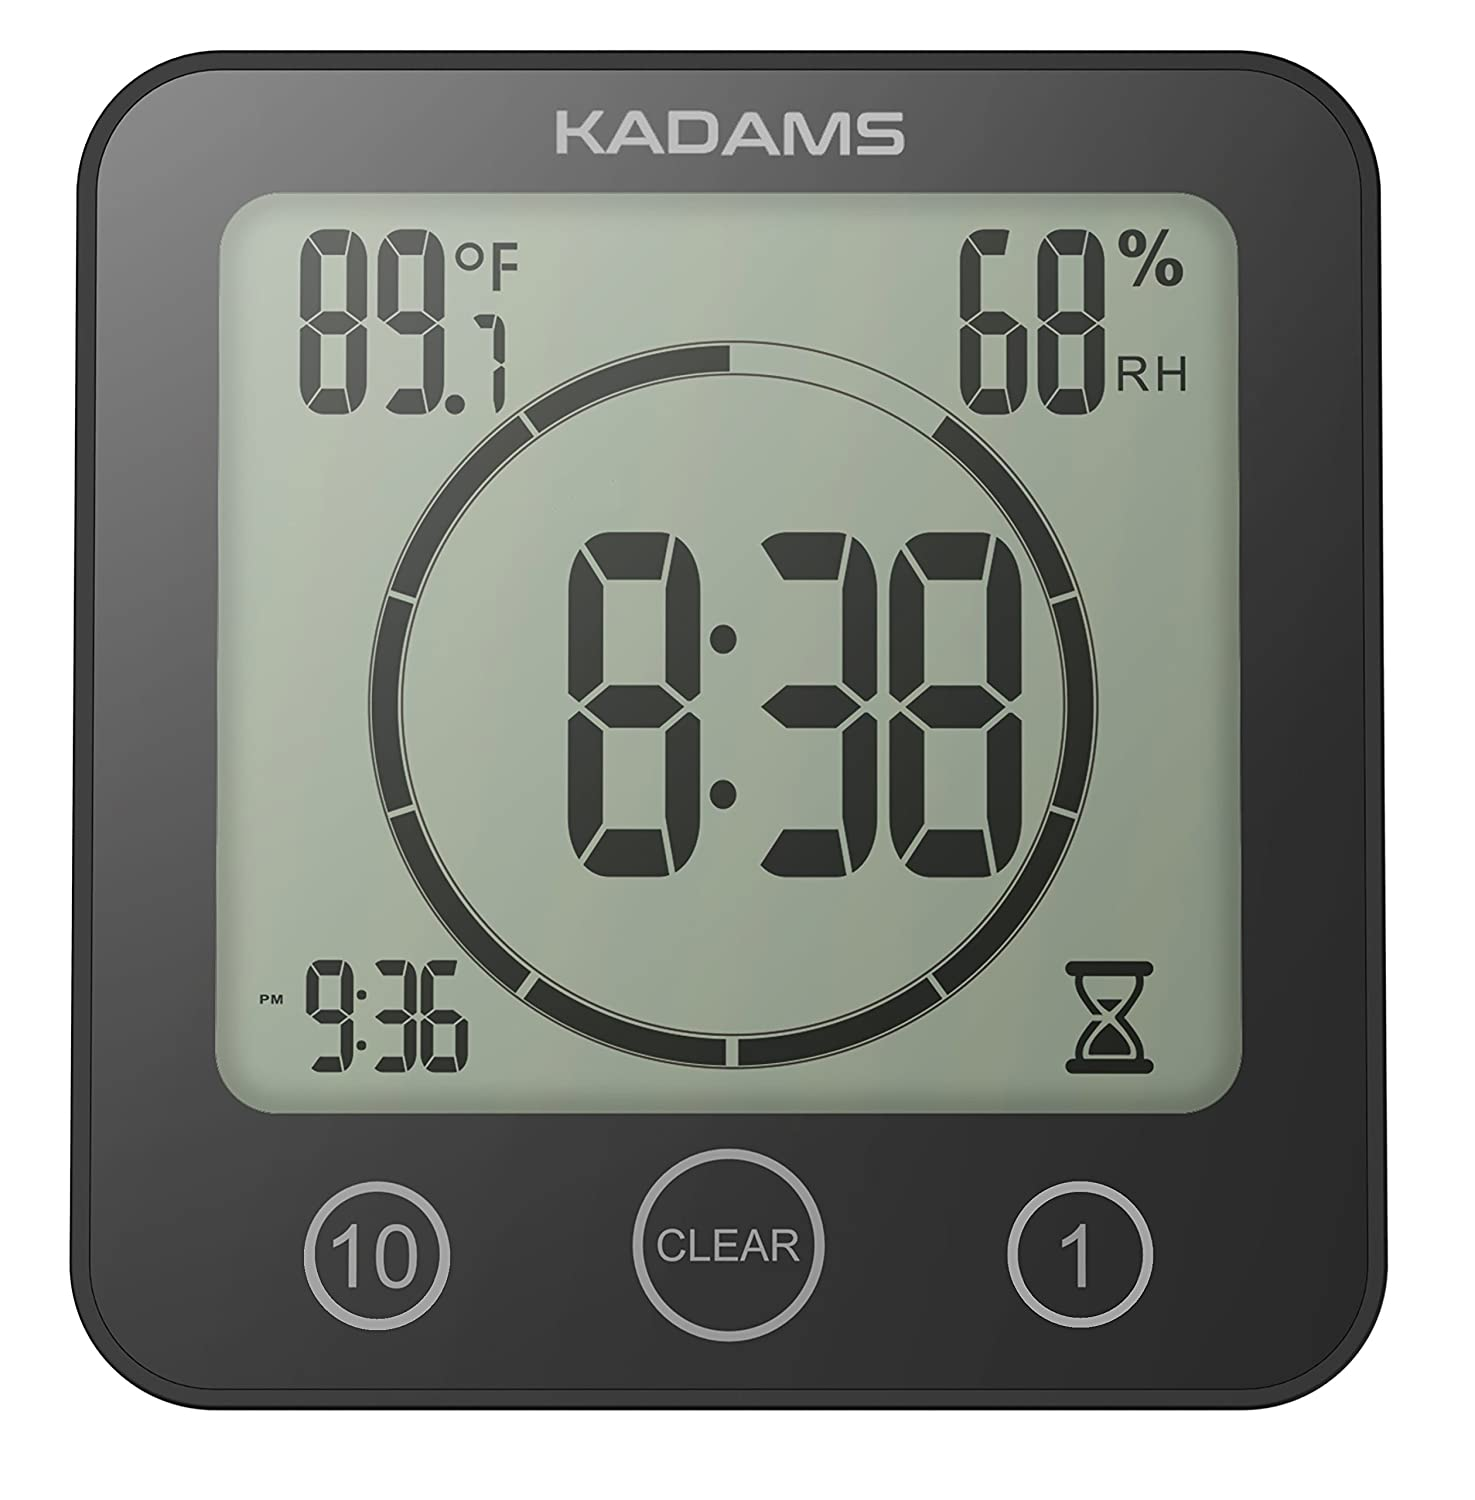 [Newest Version] KADAMS Digital Clock Timer with Alarm, Waterproof for Water Spray for Bathroom Shower Kitchen, Touch Screen Timer, Temperature Humidity Display, Suction Cup Hanging Hole Stand - BLACK K0007STH